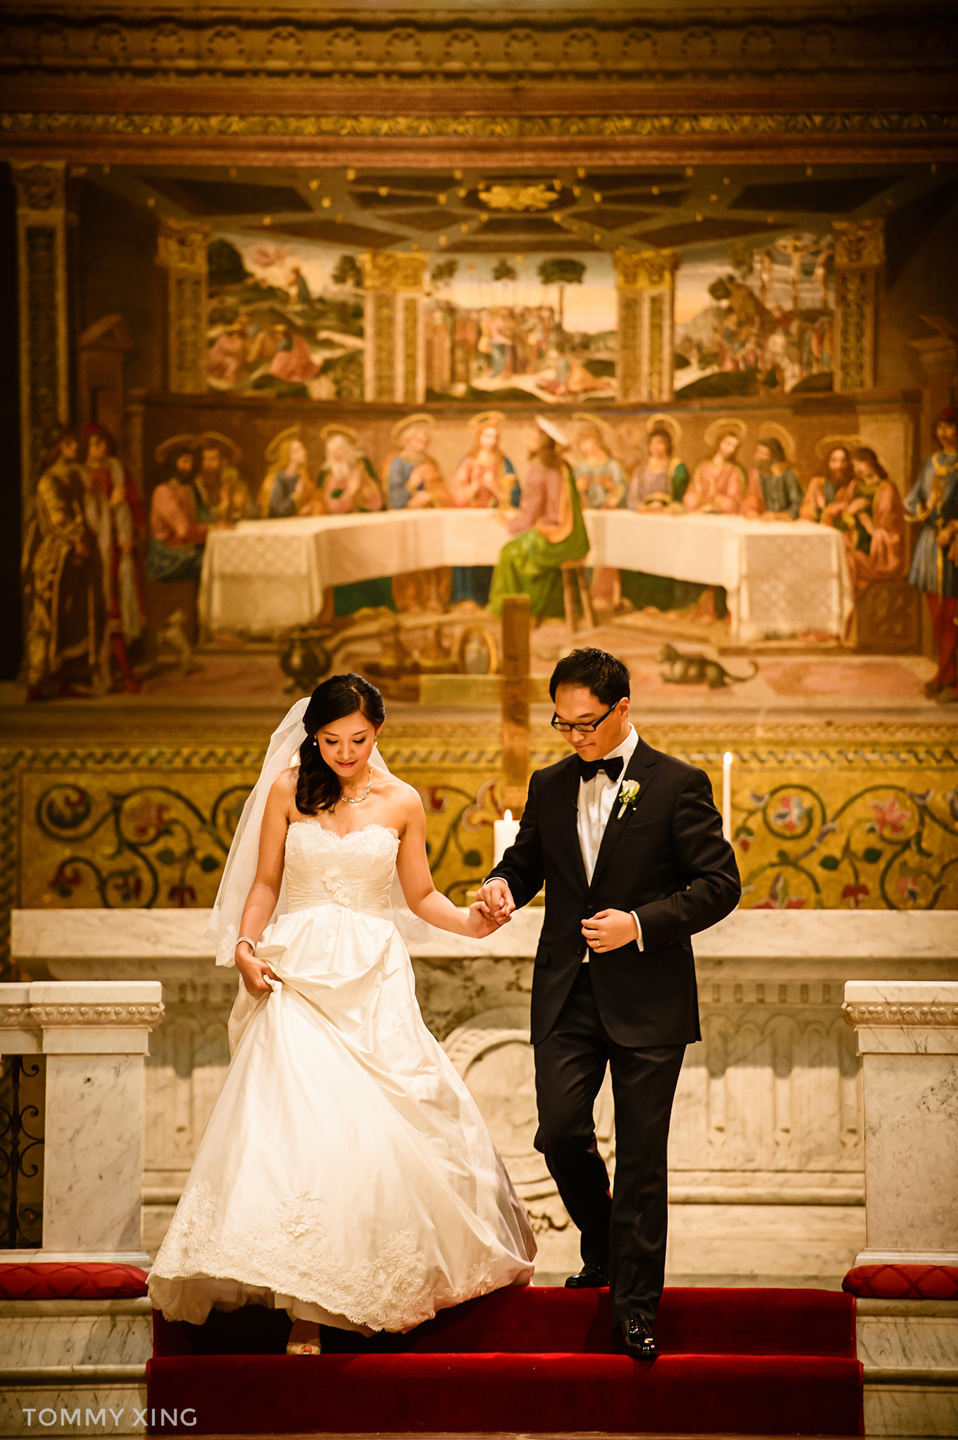 STANFORD MEMORIAL CHURCH WEDDING SAN FRANCISCO BAY AREA 斯坦福教堂婚礼 洛杉矶婚礼婚纱摄影师  Tommy Xing 47.jpg